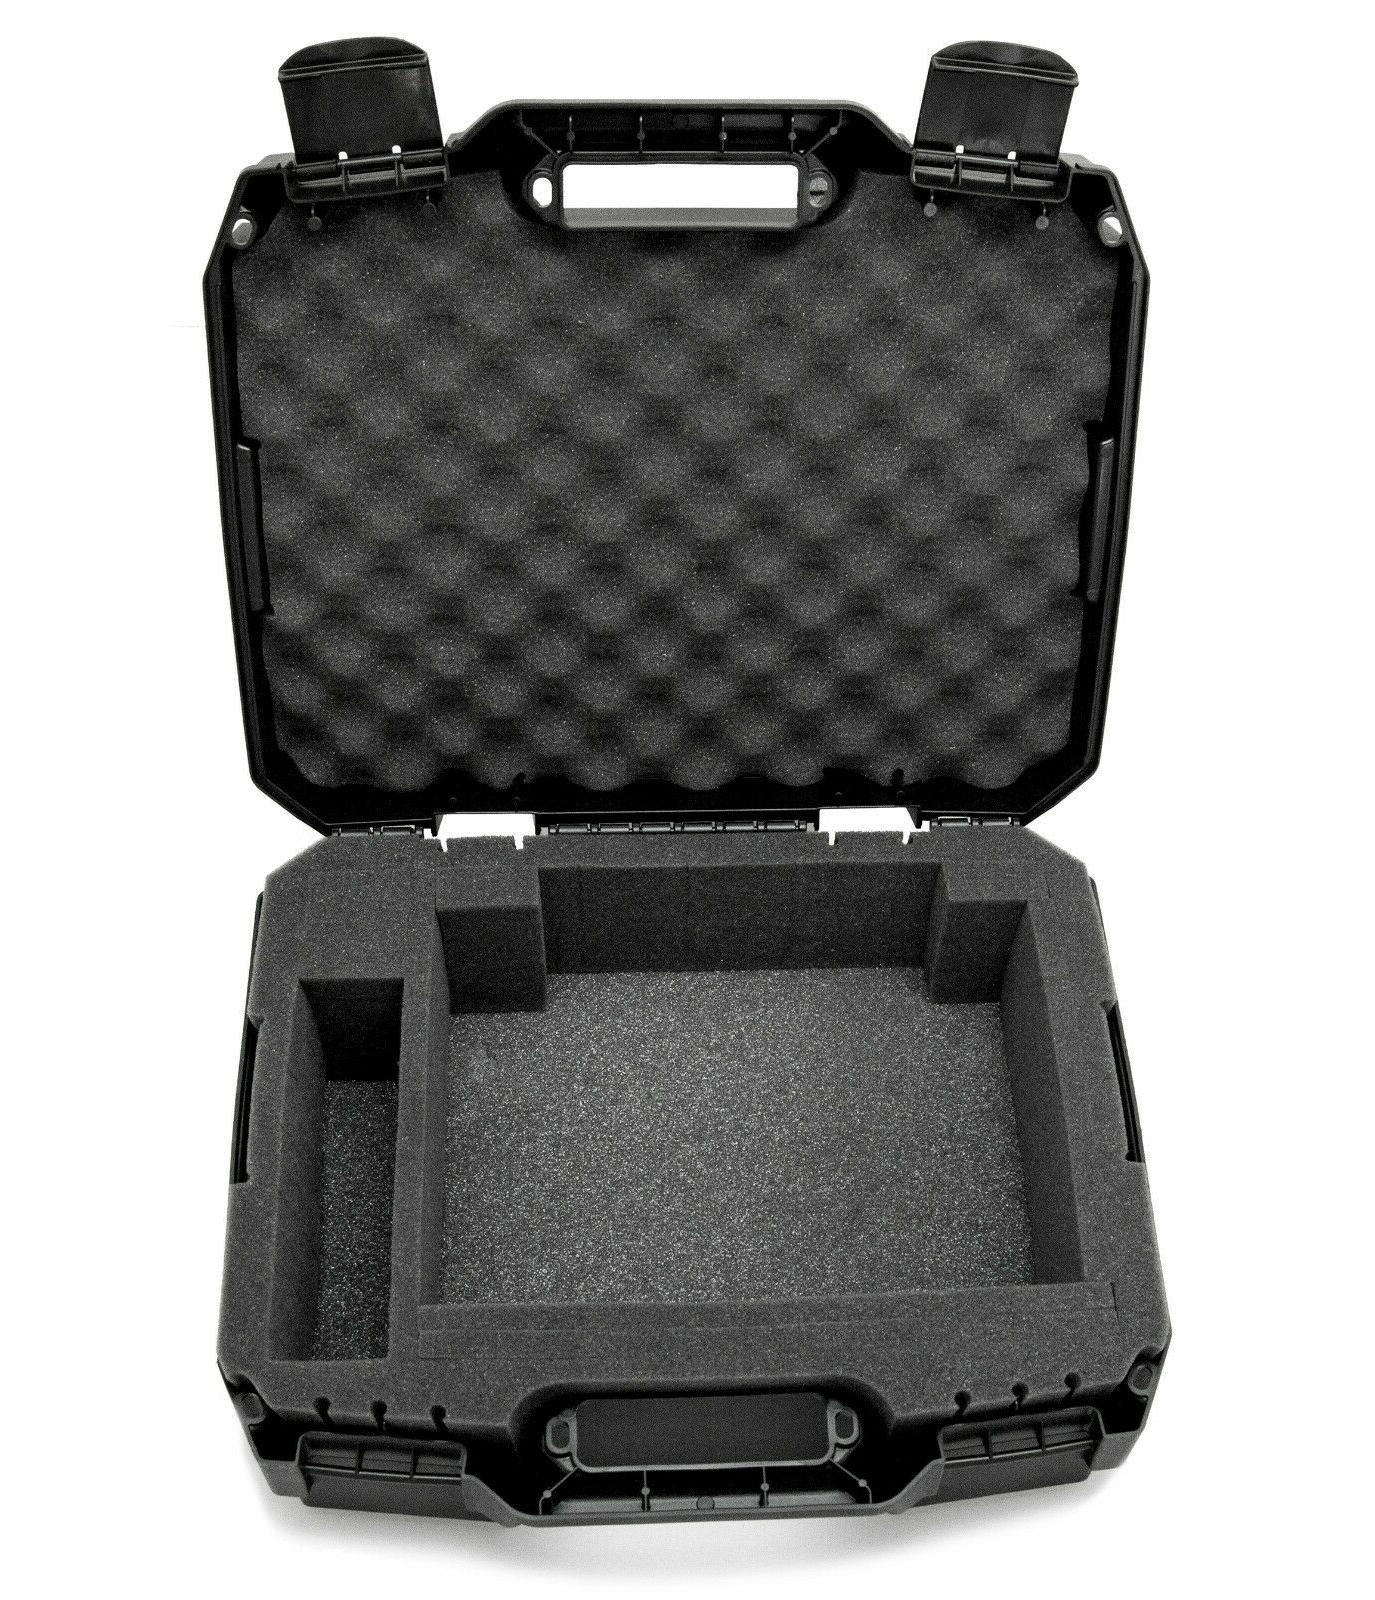 WORKFORCE Travel Video Projector Carrying Hard Case with Cus